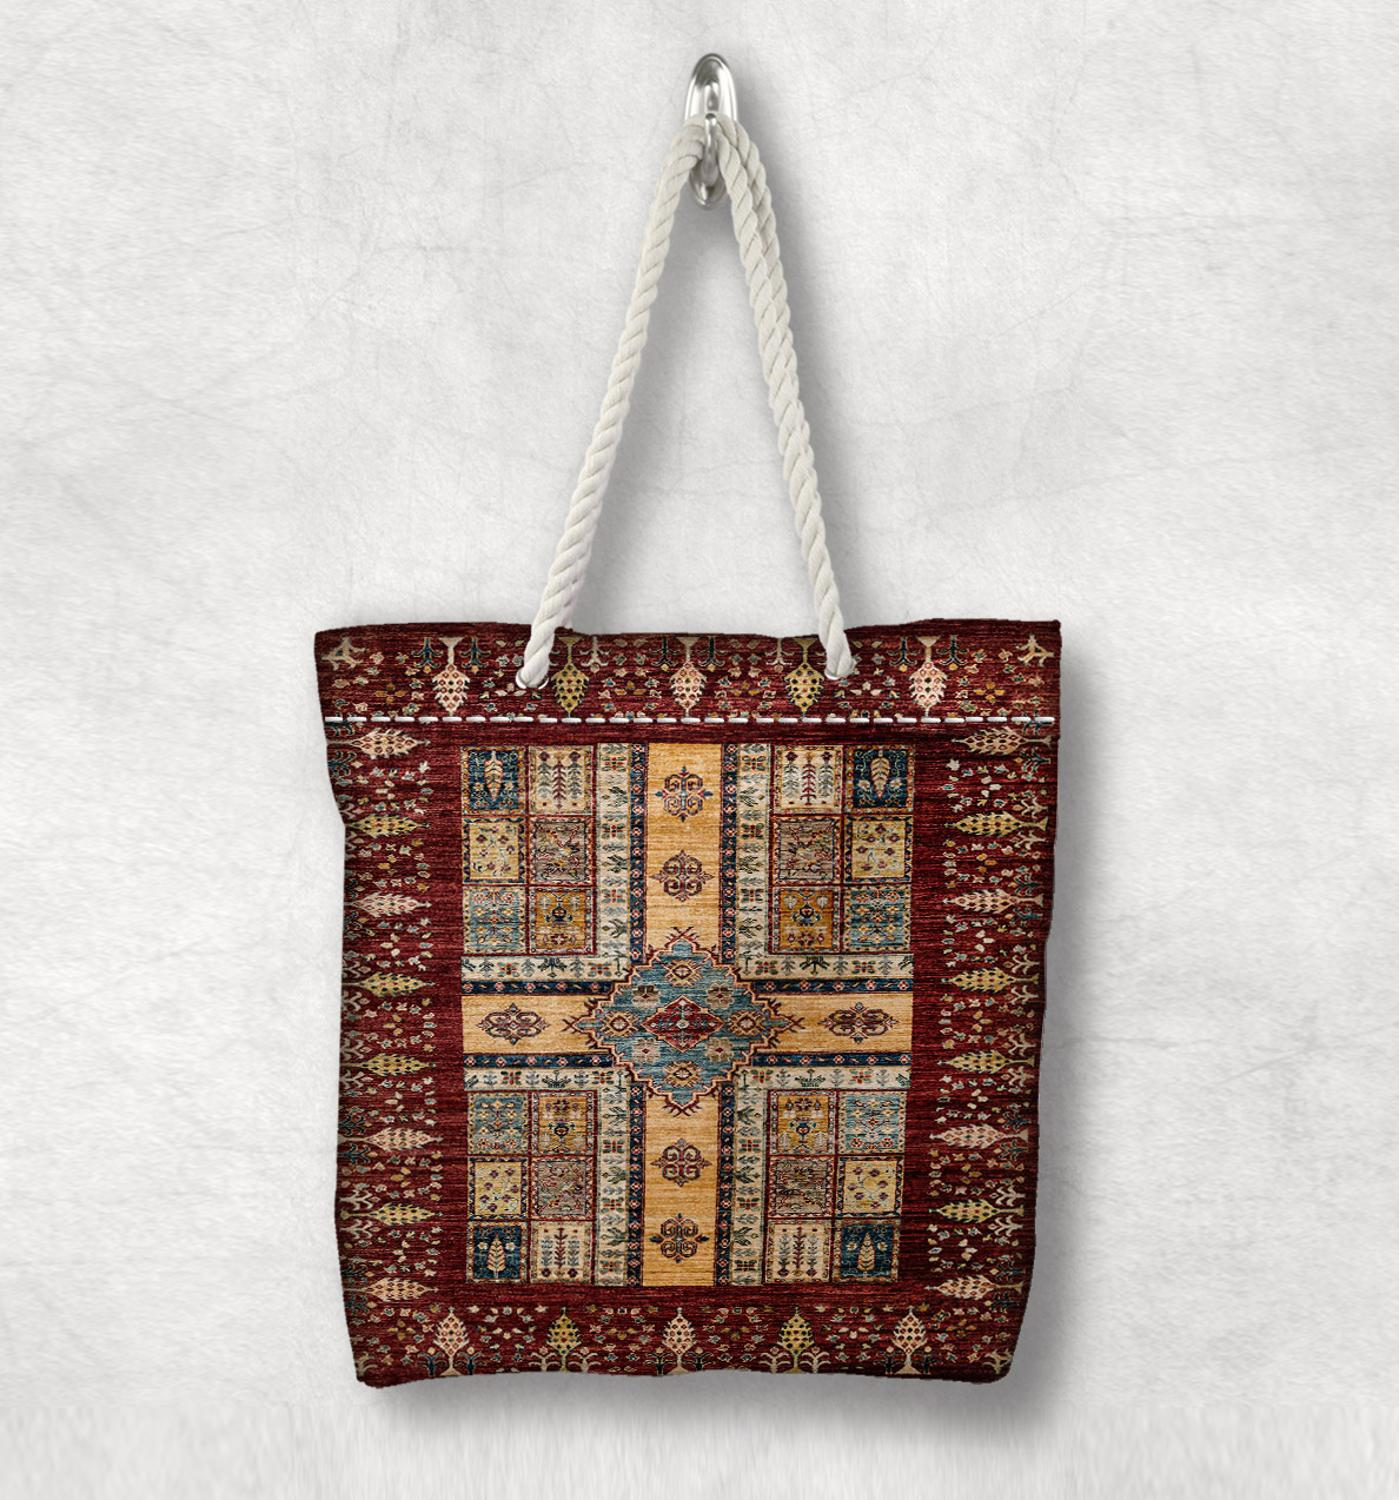 Else Yellow Brown Retro Anatolia Antique Kilim Design White Rope Handle Canvas Bag Cotton Canvas Zippered Tote Bag Shoulder Bag